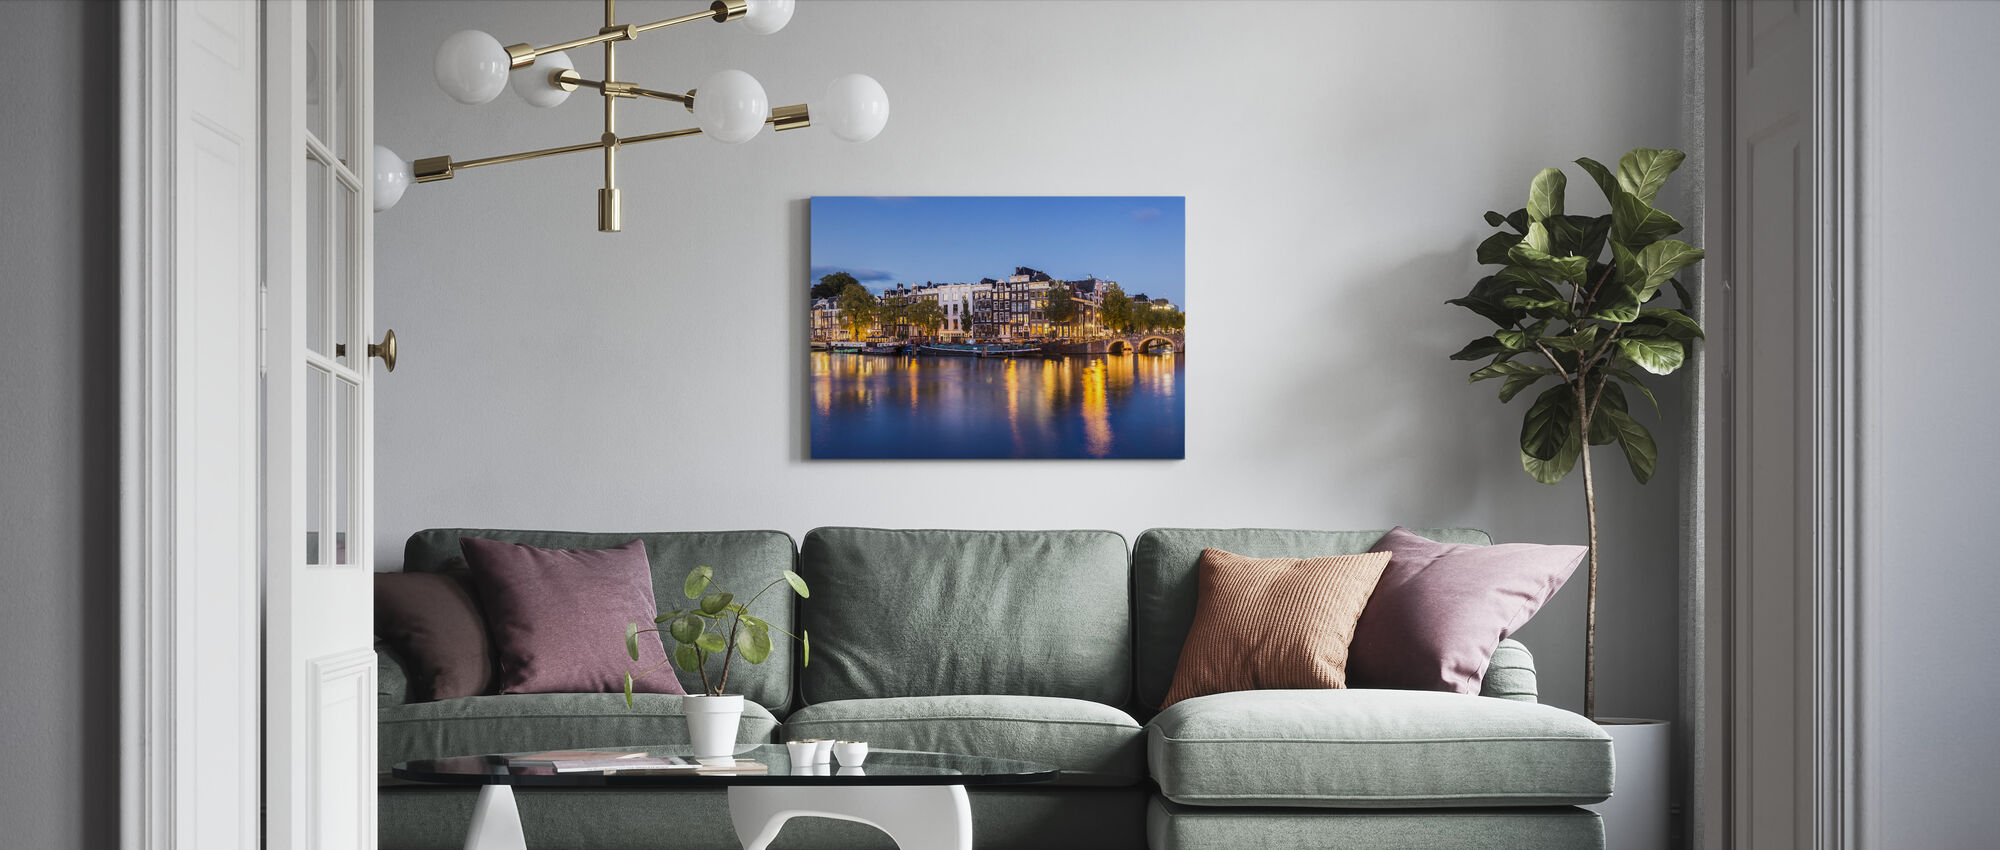 Skinny Bridge and Amstel Canal - Canvas print - Living Room